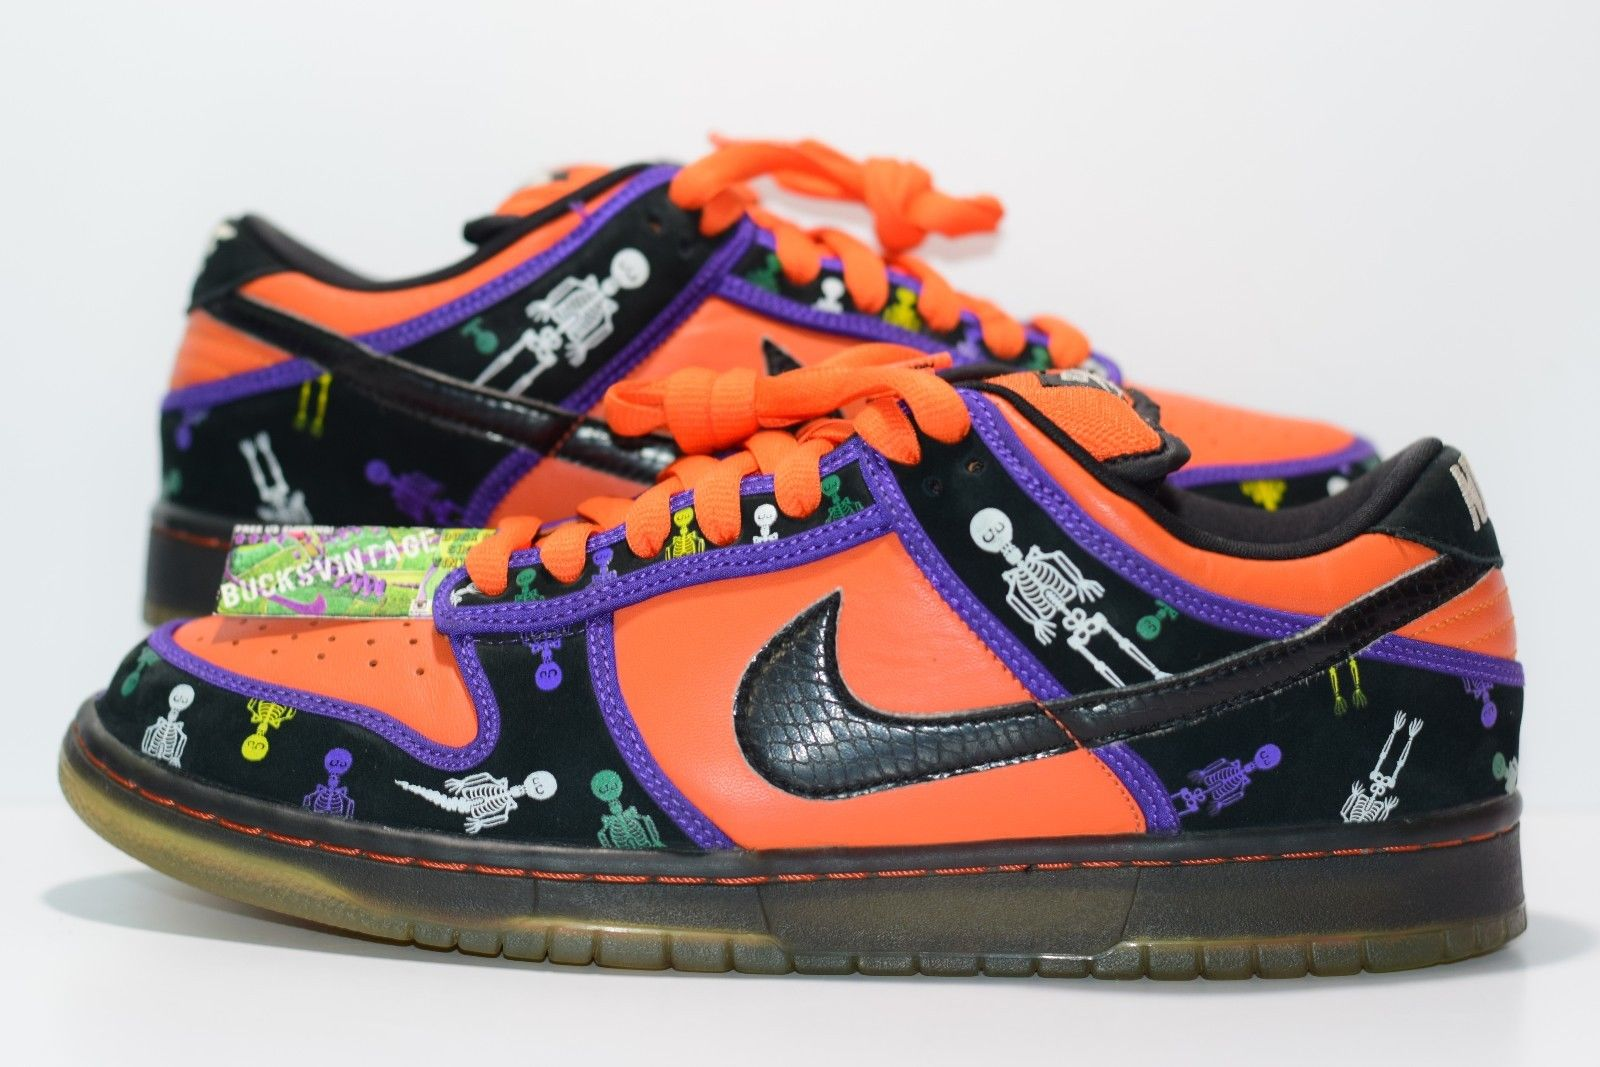 buy online cd748 0844c Size 11 | 2006 Nike Dunk SB Day of the Dead DOTD 313170-801 from  BucksVintage